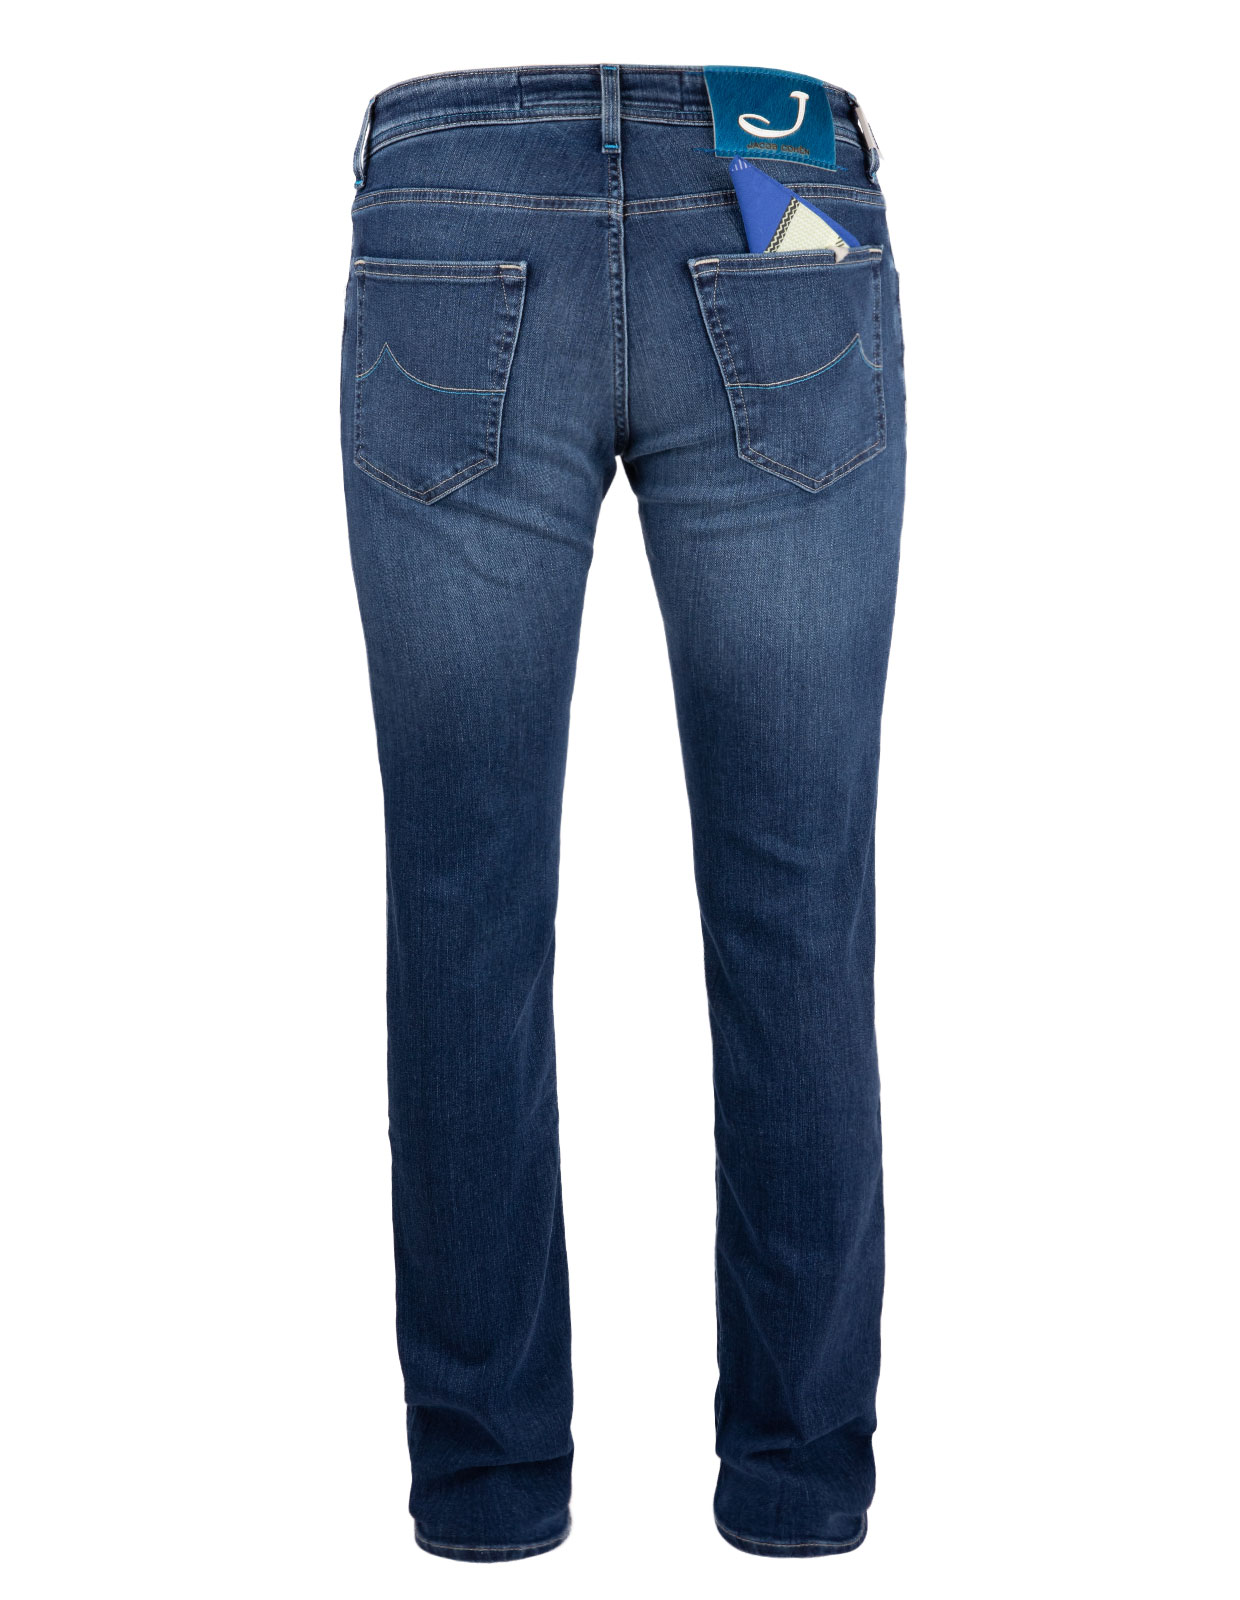 J622 Jeans 00918 Denim Stretch Blue Wash